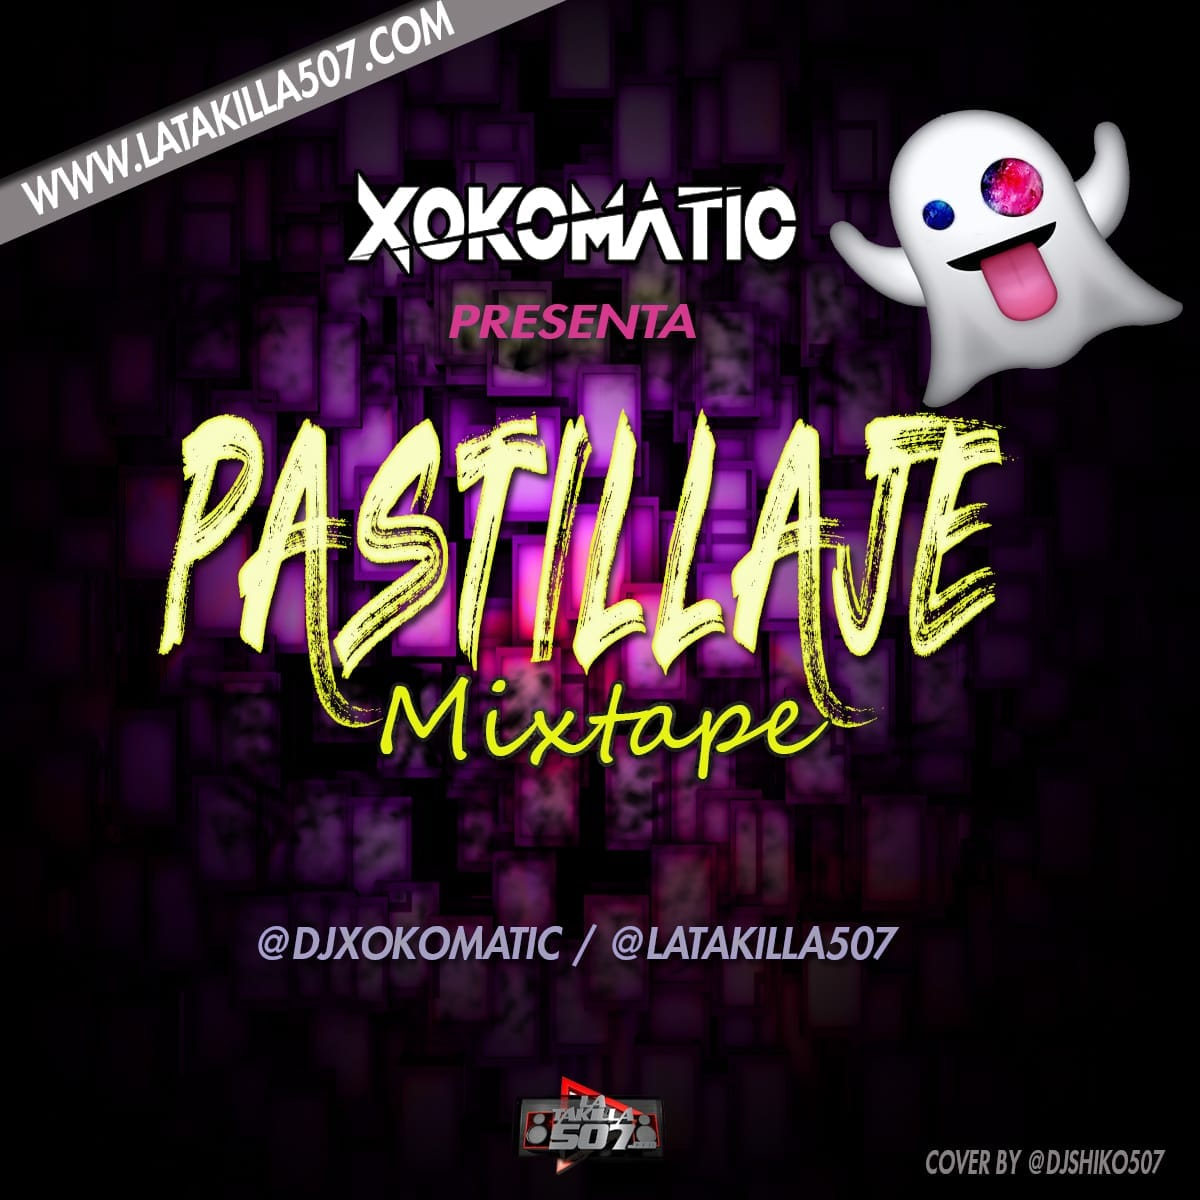 Pastillaje Mixtape  by Dj Xokomatic.mp3